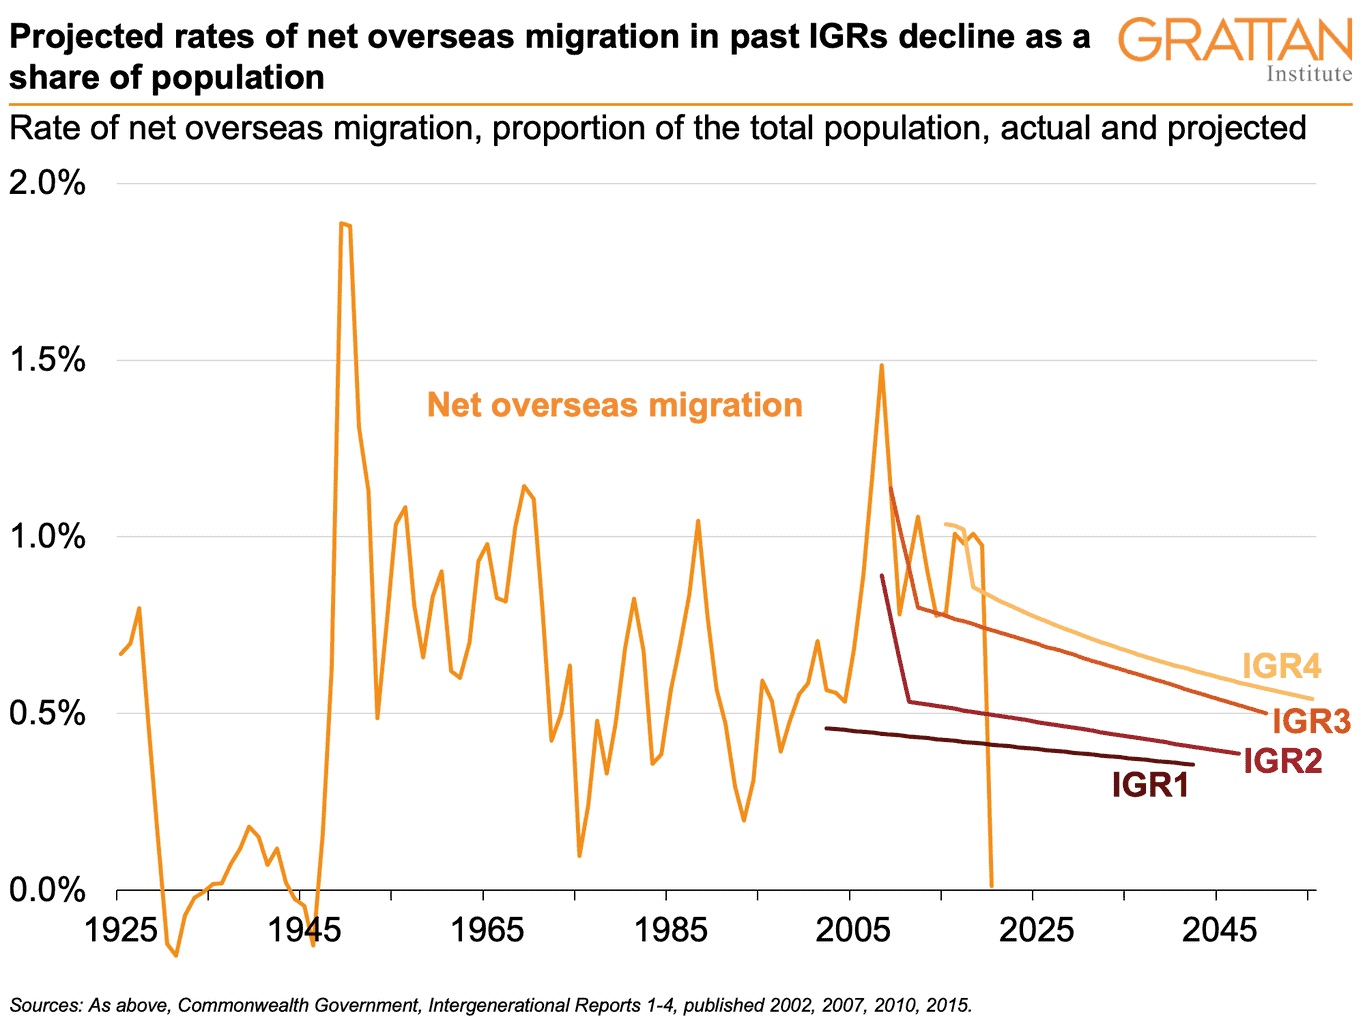 Net overseas migration as a share of population from 1925 to 2020 and the rate assumed in the first four intergenerational reports